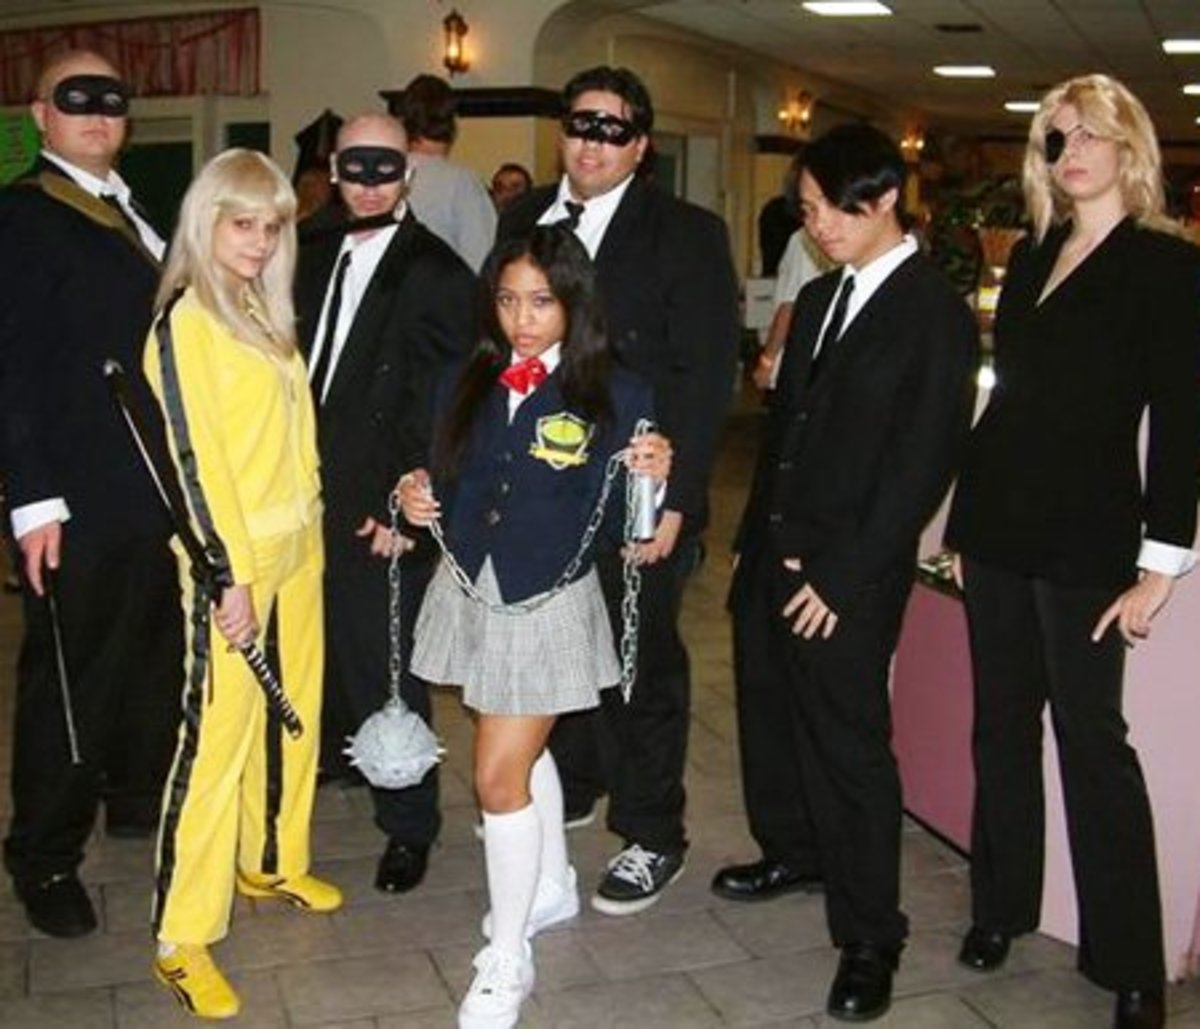 Kill Bill Group Costume